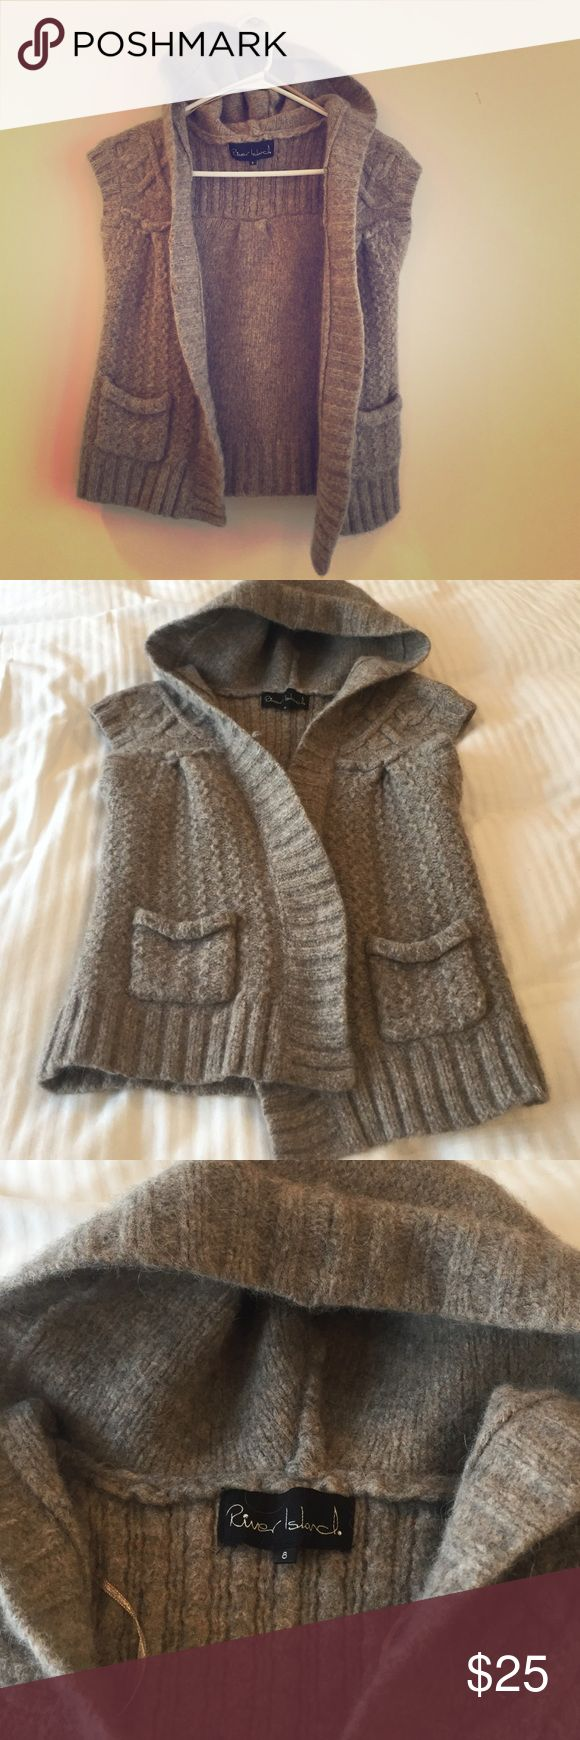 River Island wool vest size 8 River Island Lambswool Vest, Size 8 (can) runs small, missing buttons on the front, hardy worn! River Island Jackets & Coats Vests